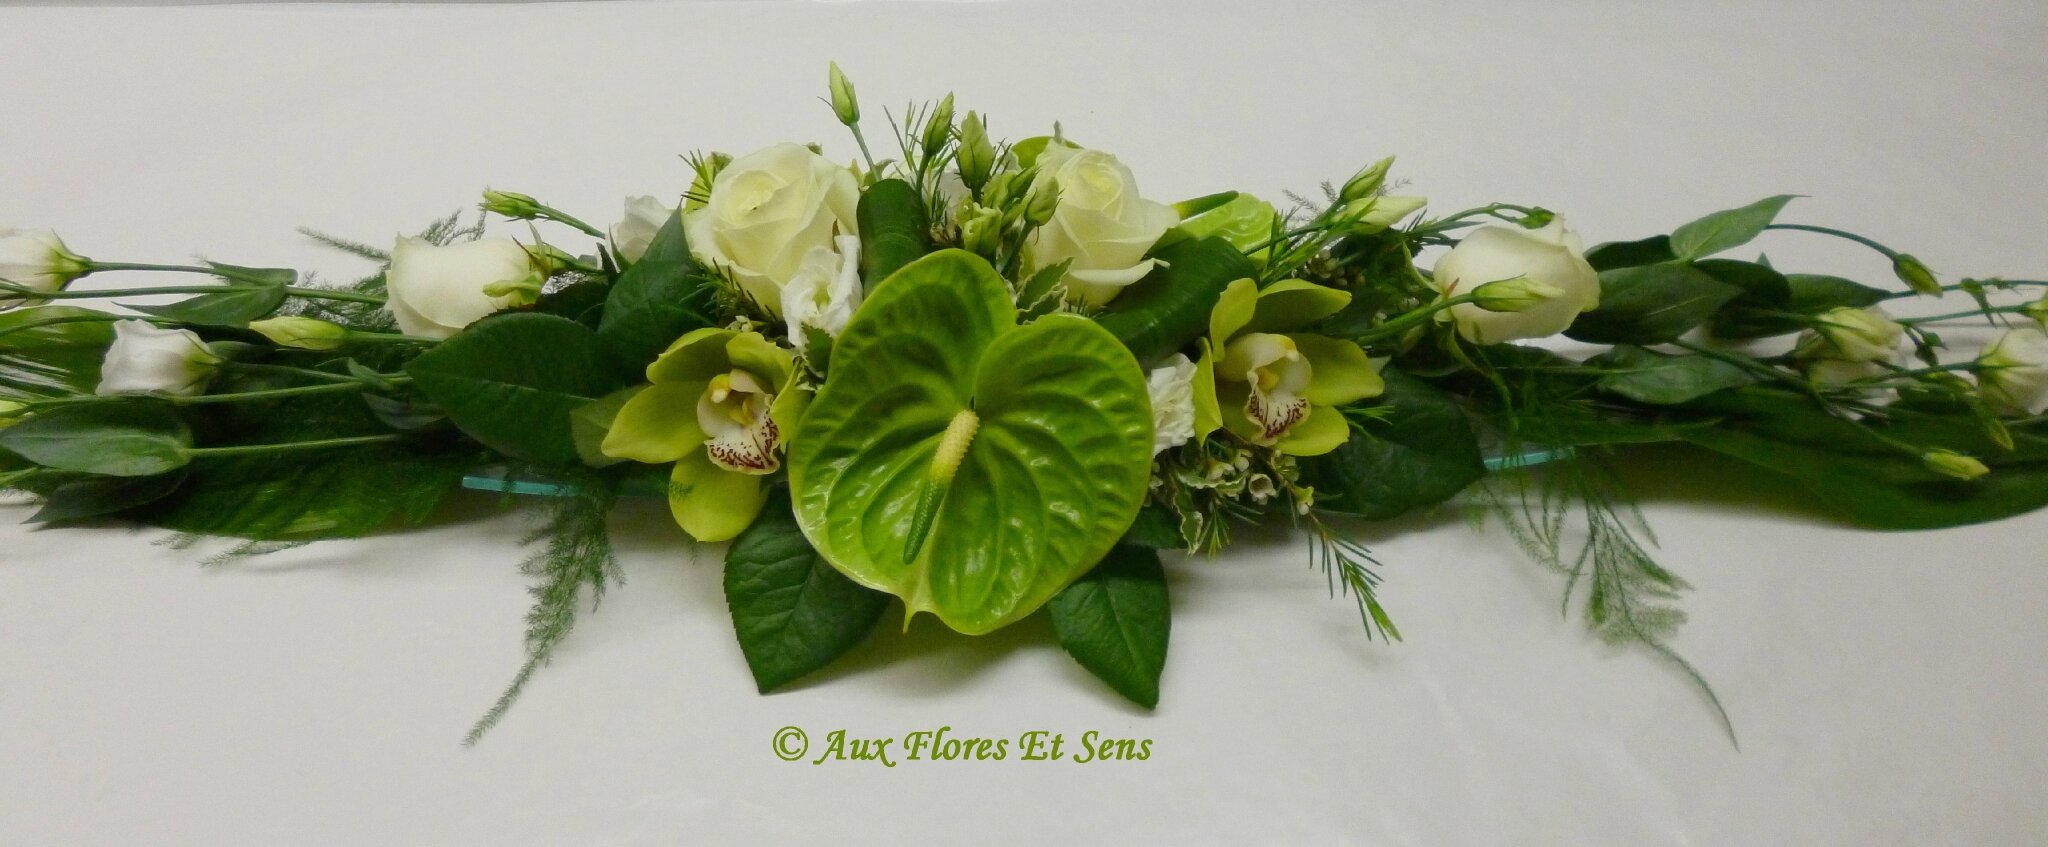 Composition florale centre de table great petit centre de table cymbidium anthurium lysianthus - Composition florale centre de table ...